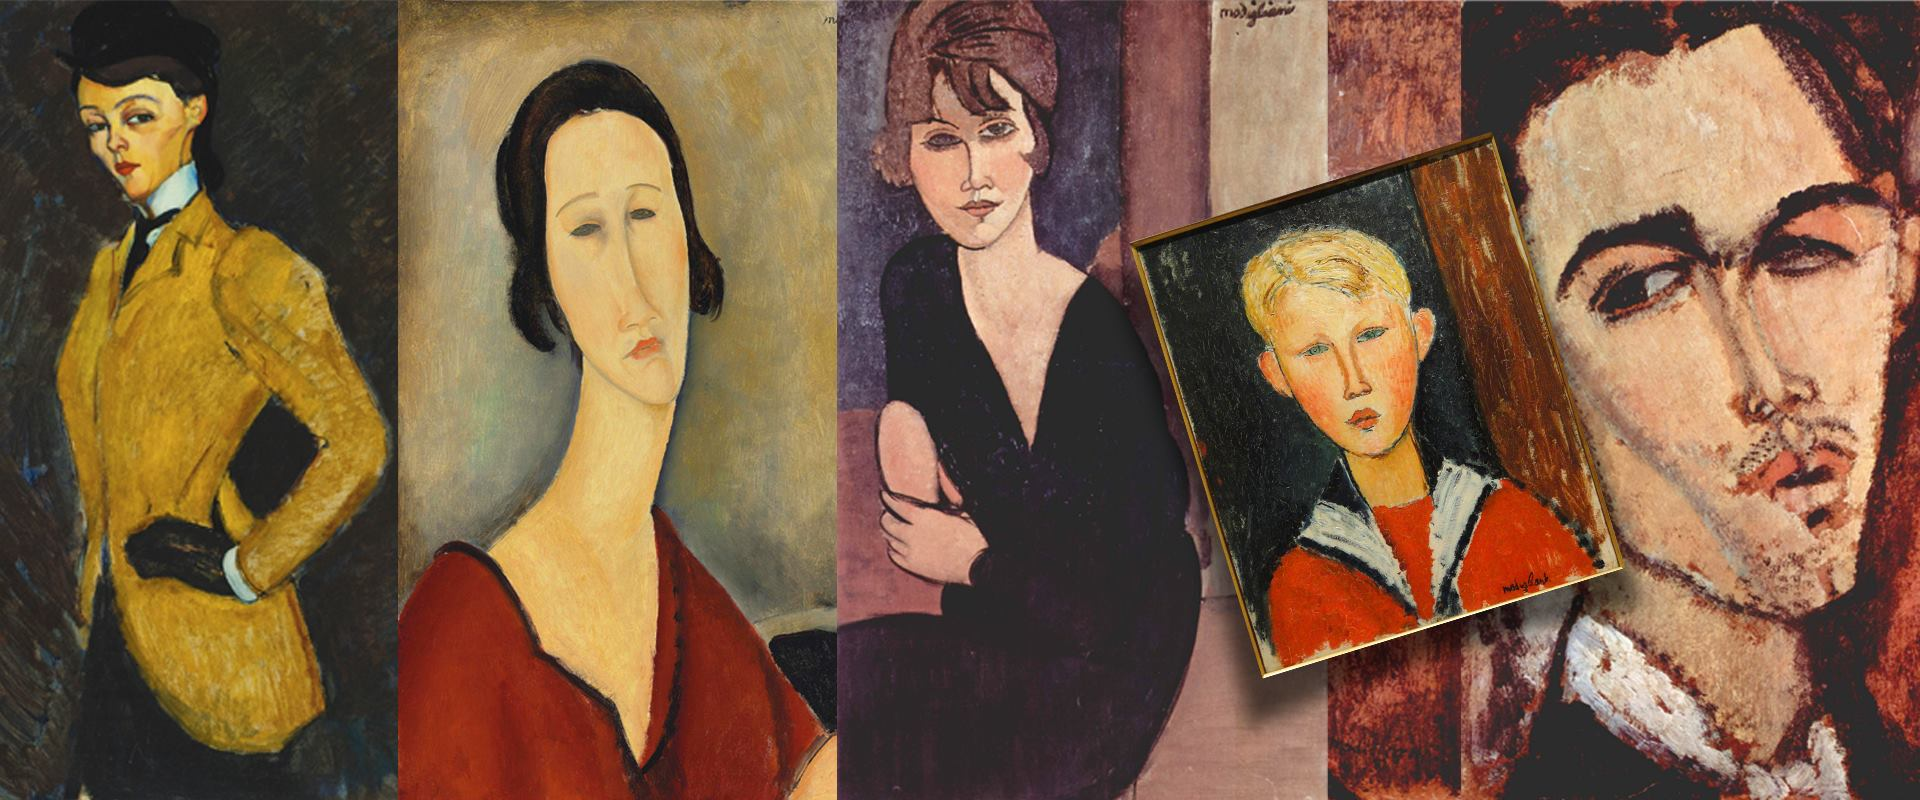 Amedeo Modigliani cover